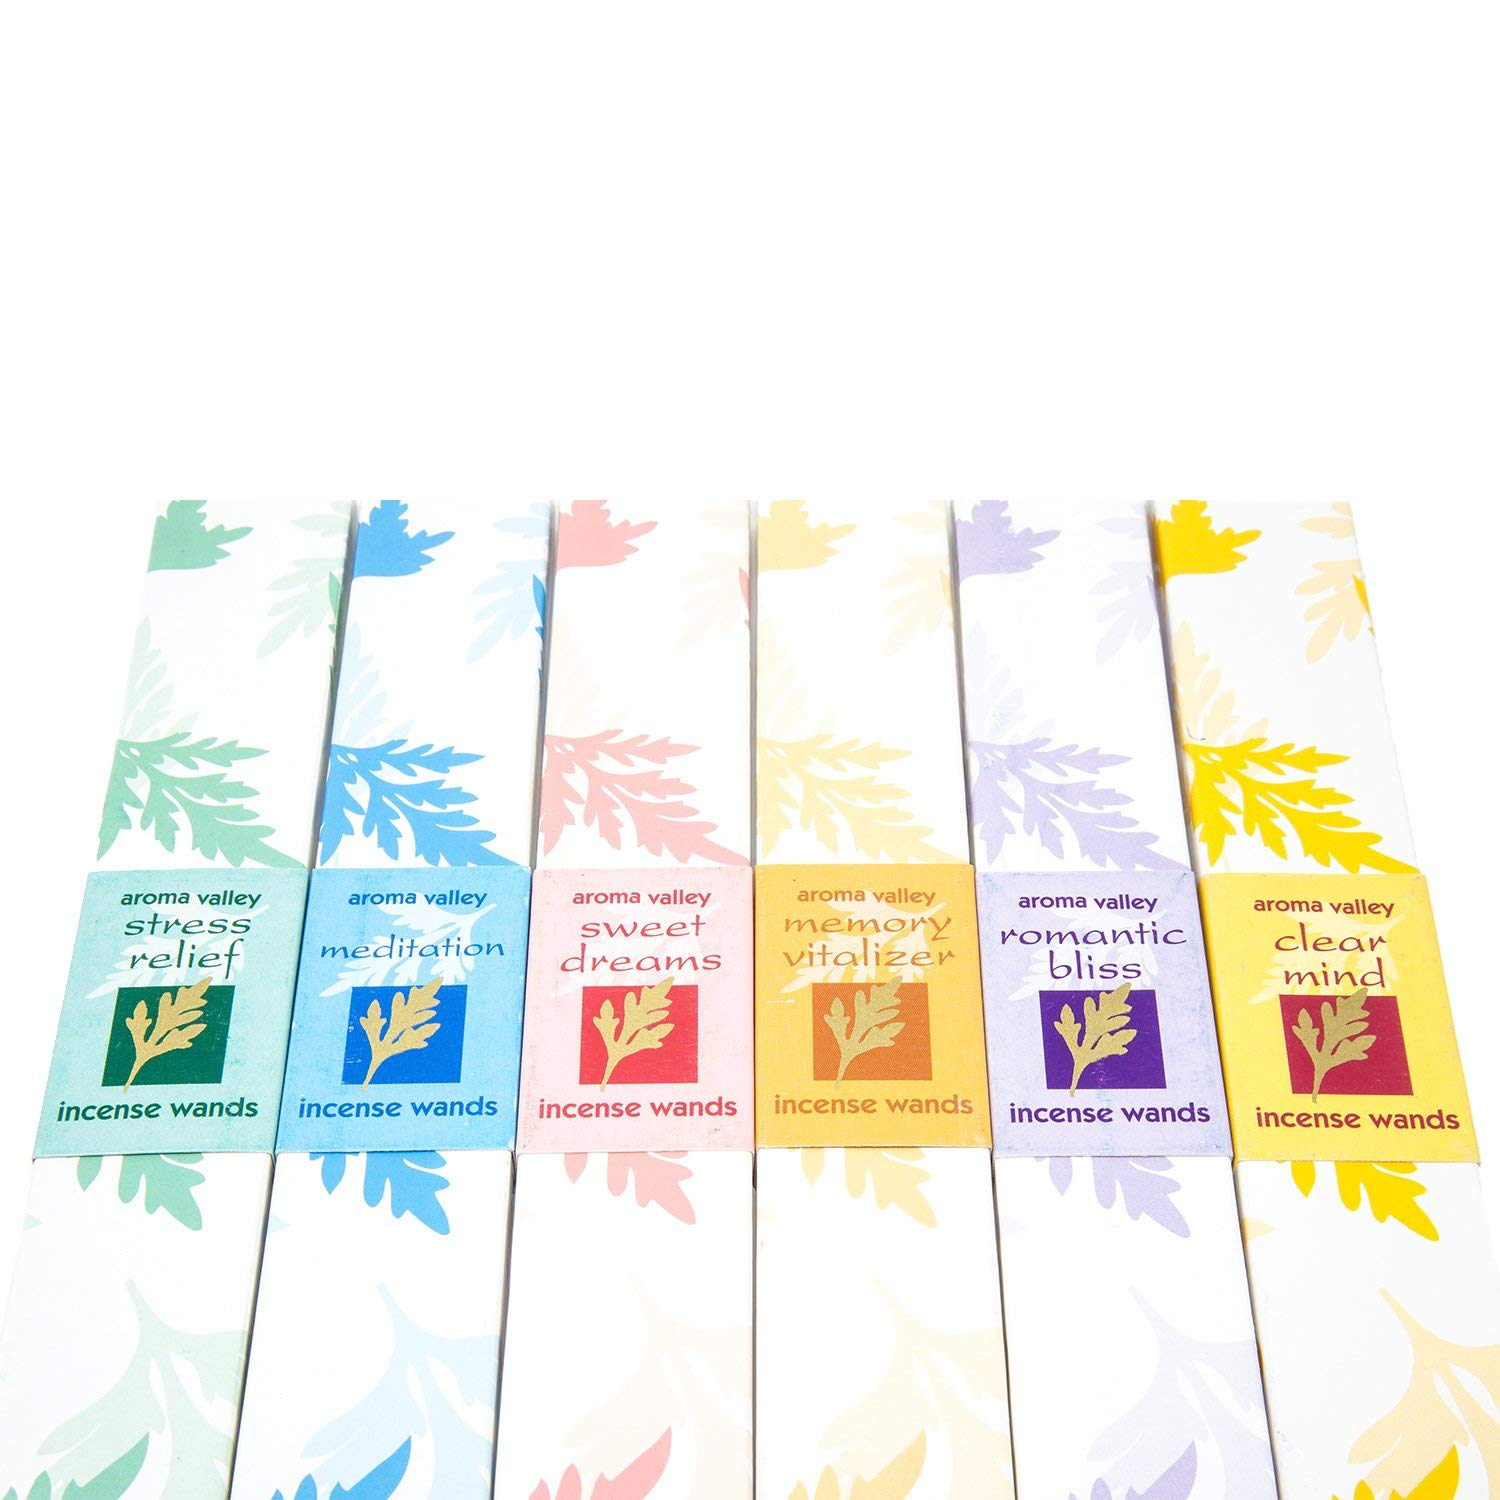 Eco Friendly Organic Handmade Aroma Incense Wands with Ceramic Holder Clear Mind Meditation Memory Vitalizer Romantic Bliss Stress Relief Sweet Dreams,10 Incense Sticks in Each Pack